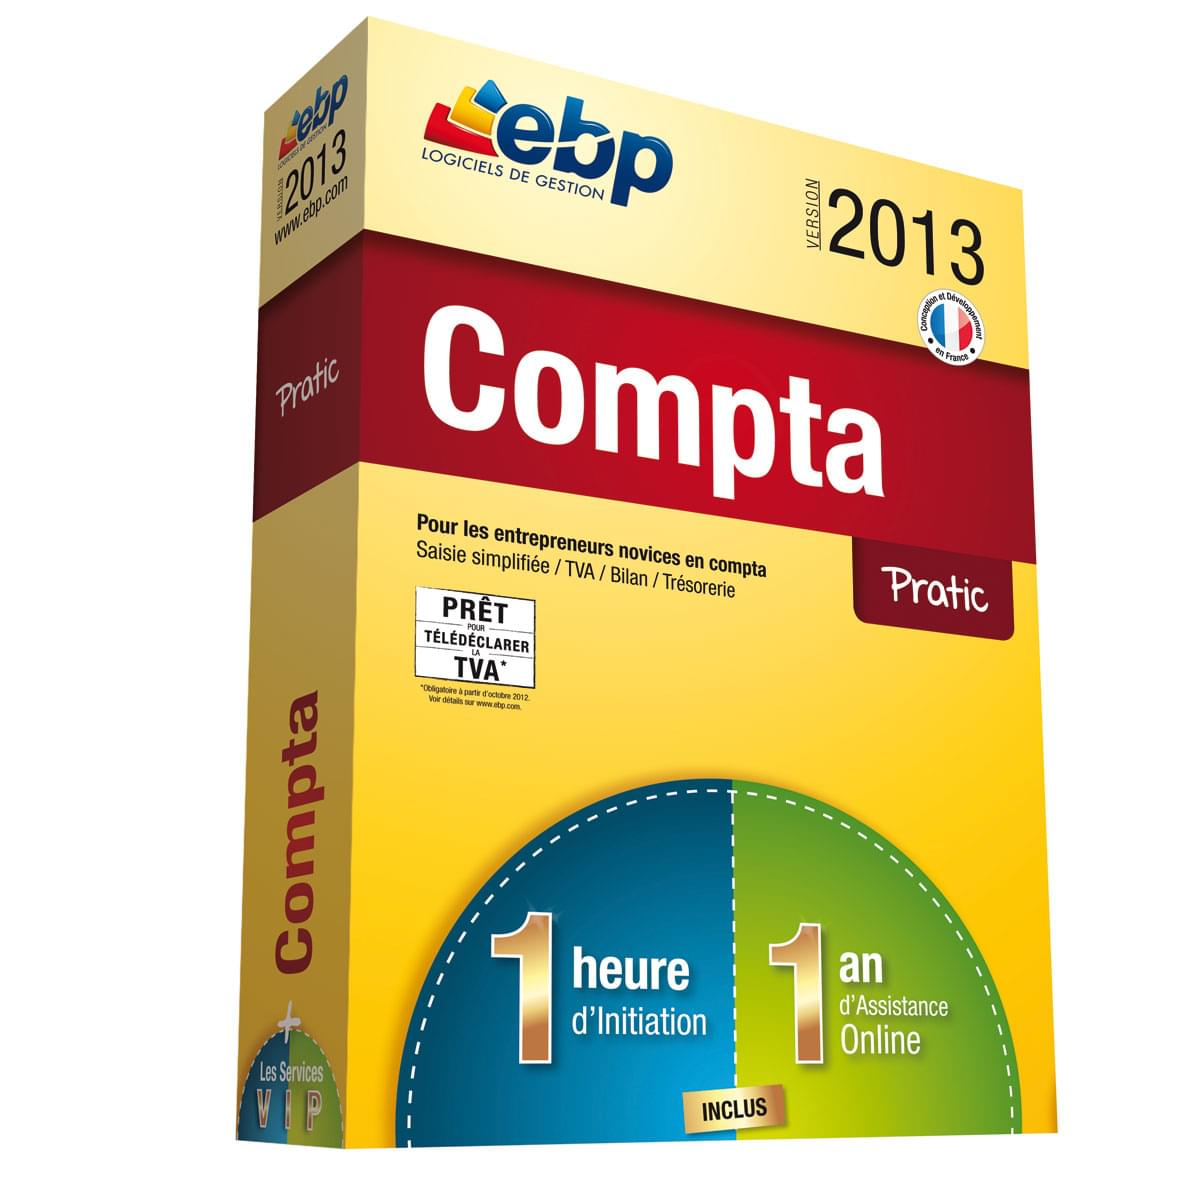 EBP Compta Pratic 2013  + Services VIP - Logiciel application - 0